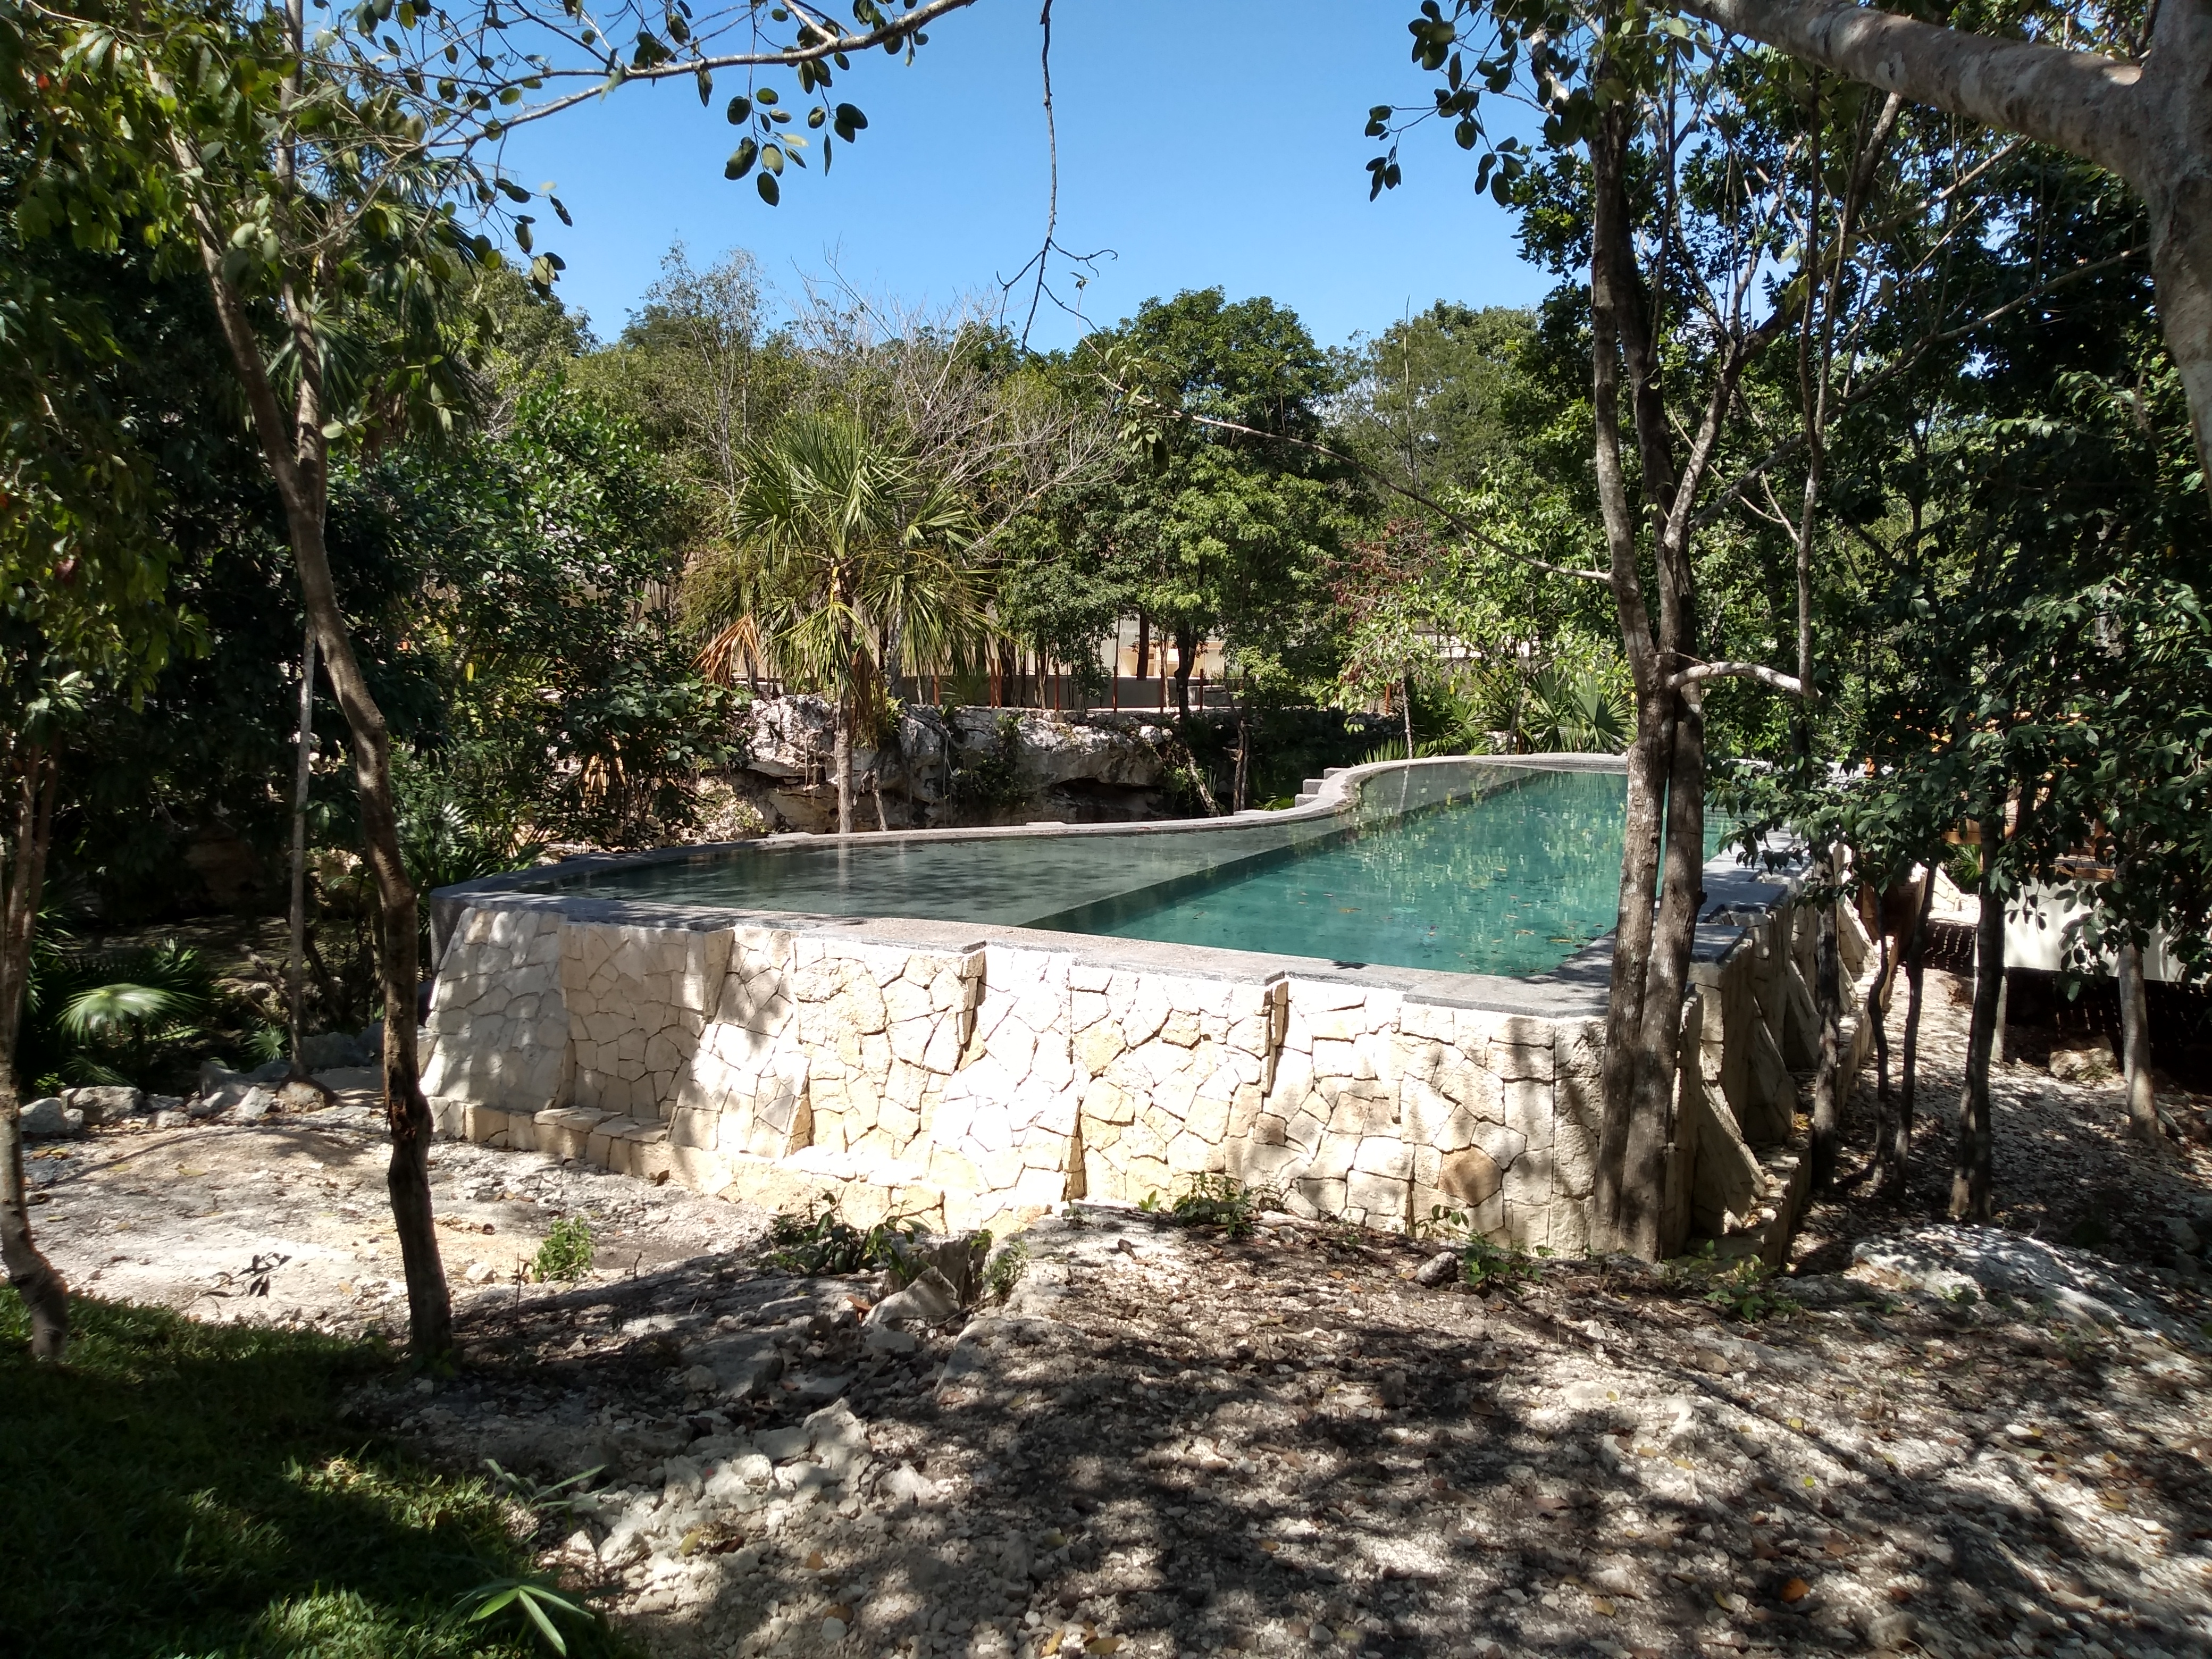 21050 Single family lot in a residential area of Playa del  - Lot